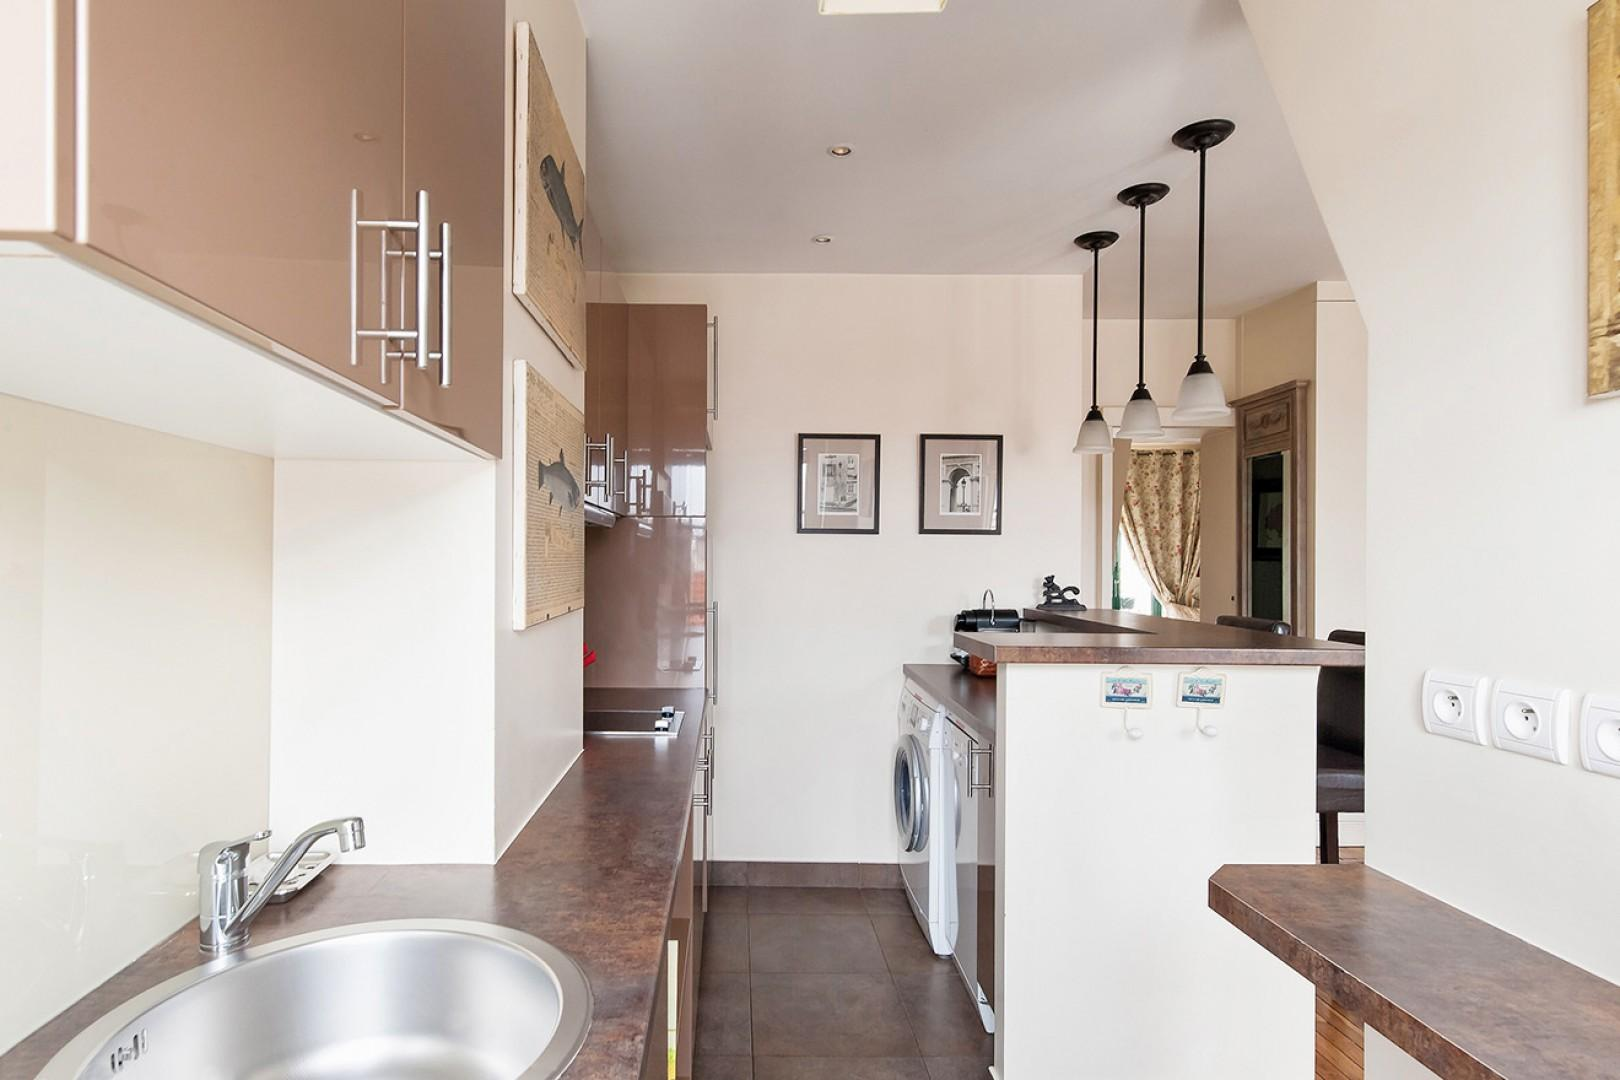 The kitchen is fully equipped and there is plenty of workspace.